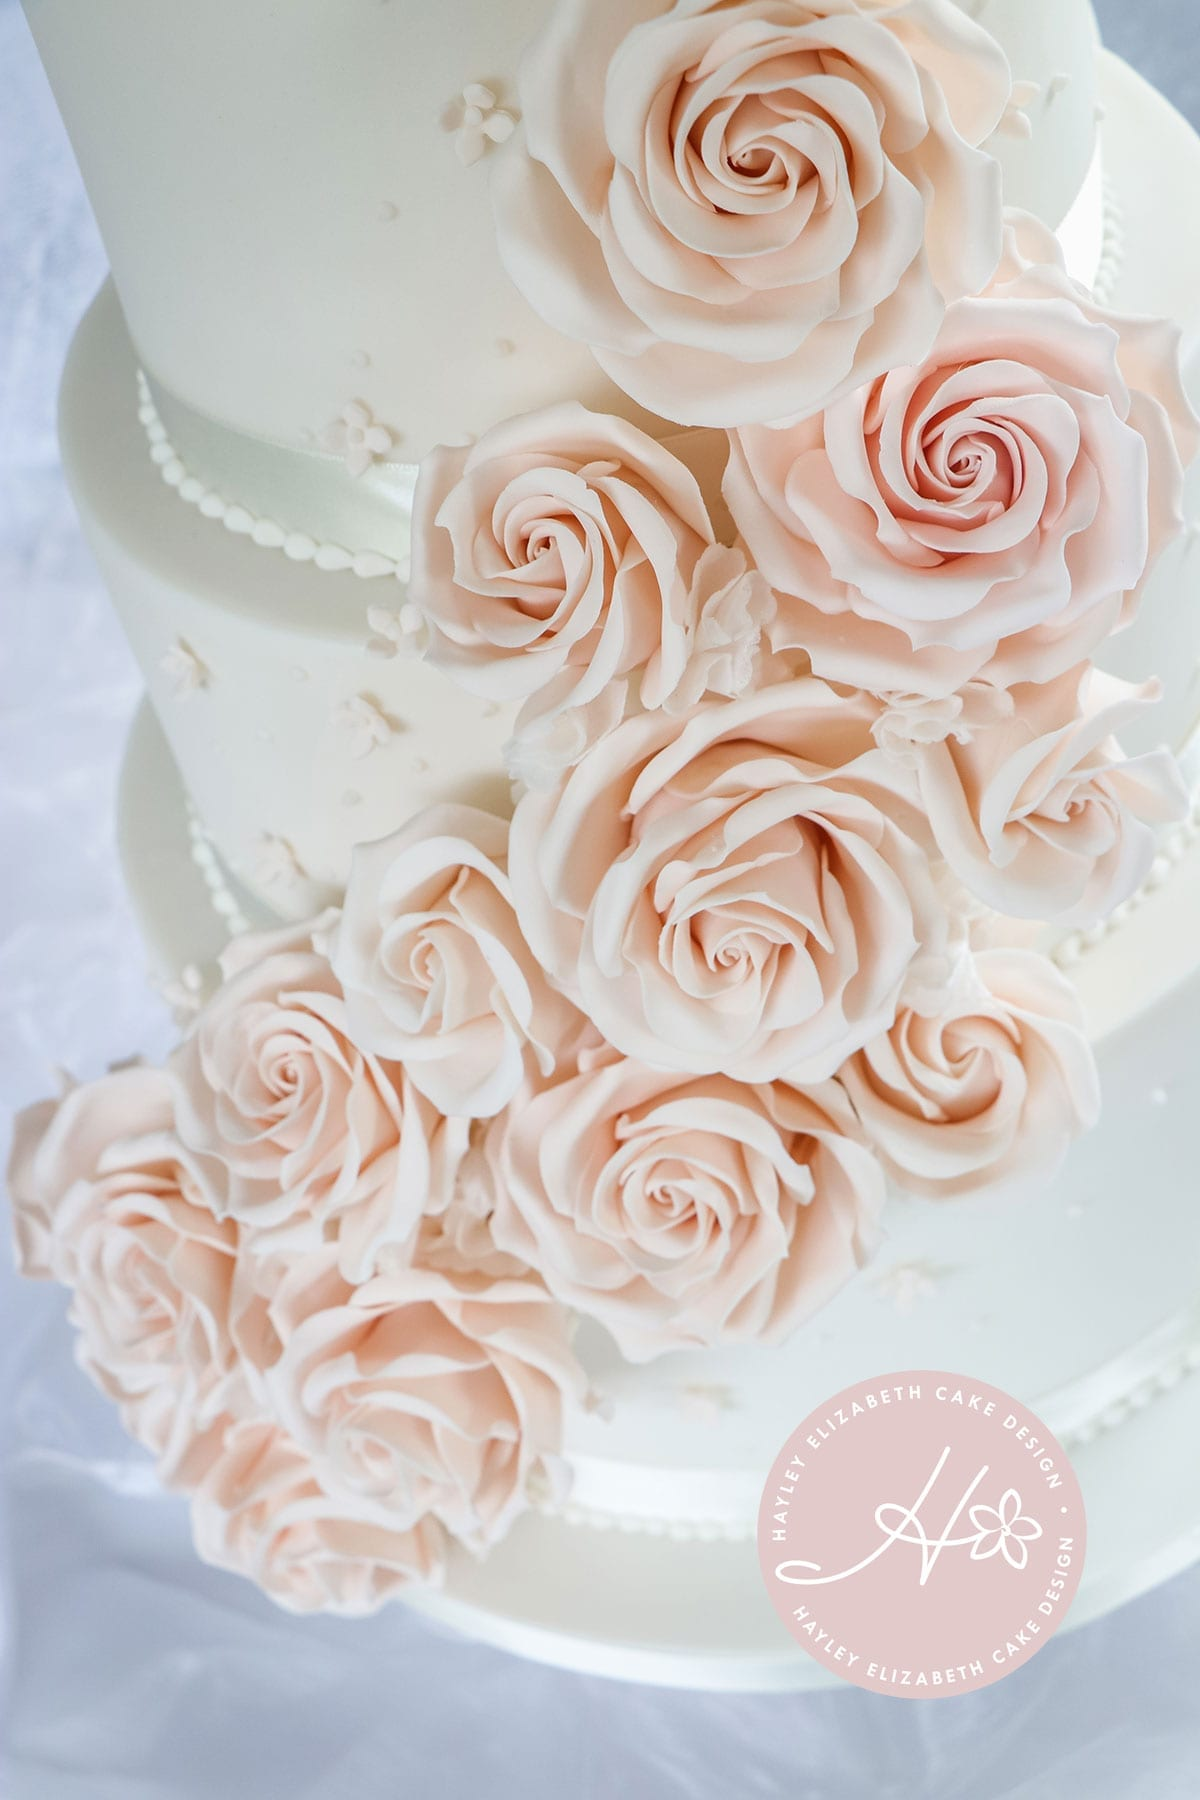 Blush sugar flowers, luxury wedding cake from Hayley Elizabeth Cake Design, Dorset and Hampshire cake designer. White and blush wedding cake, sugar flowers, pink roses, rose cascade cake, white and pink wedding cake, blush sugar roses, white wedding cake, elegant wedding cake, wedding cake ideas.